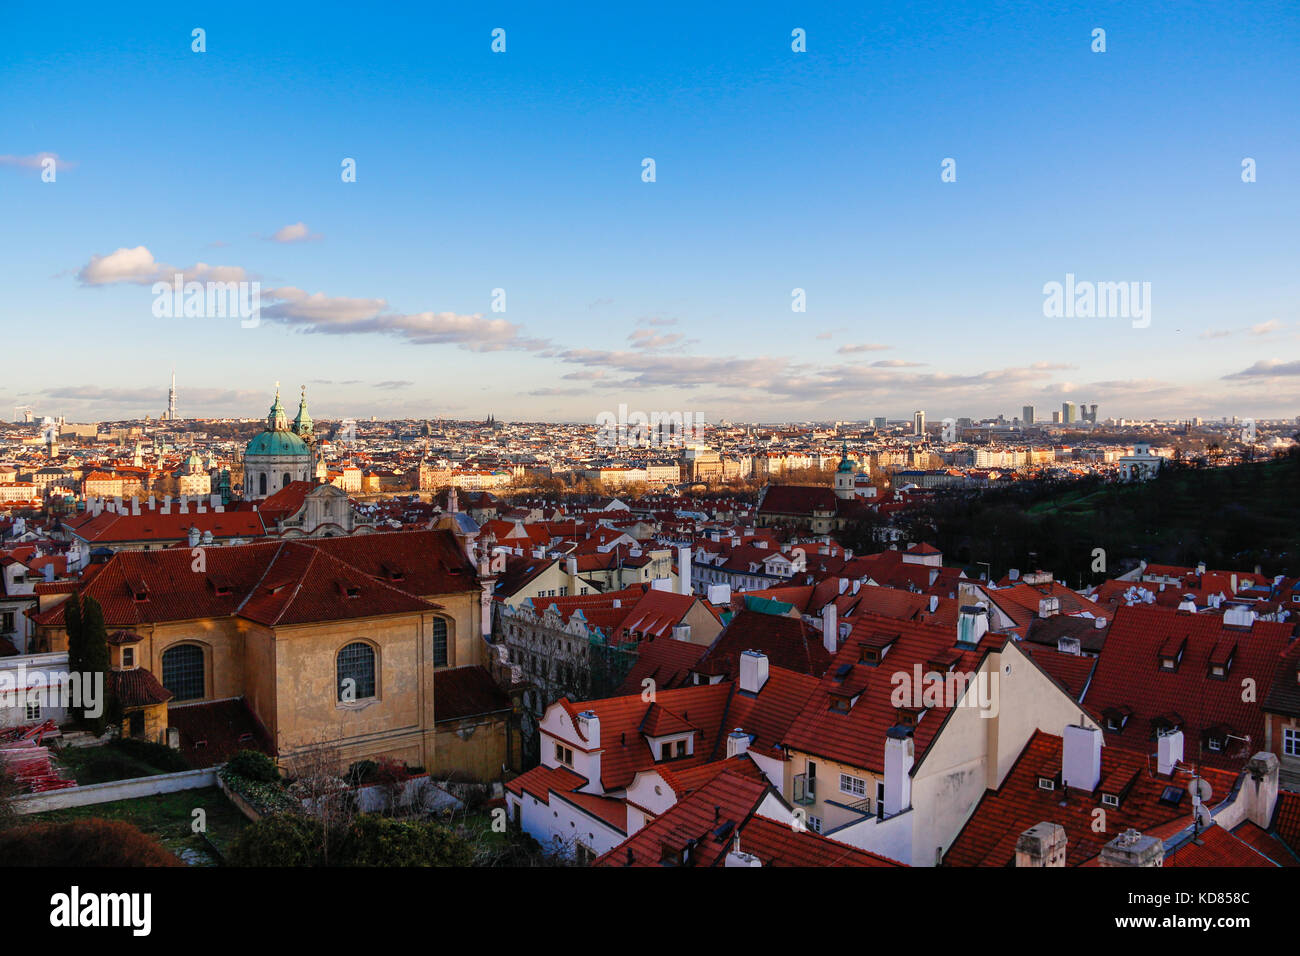 Aerial view of city,Prague,Czech Republic - Stock Image